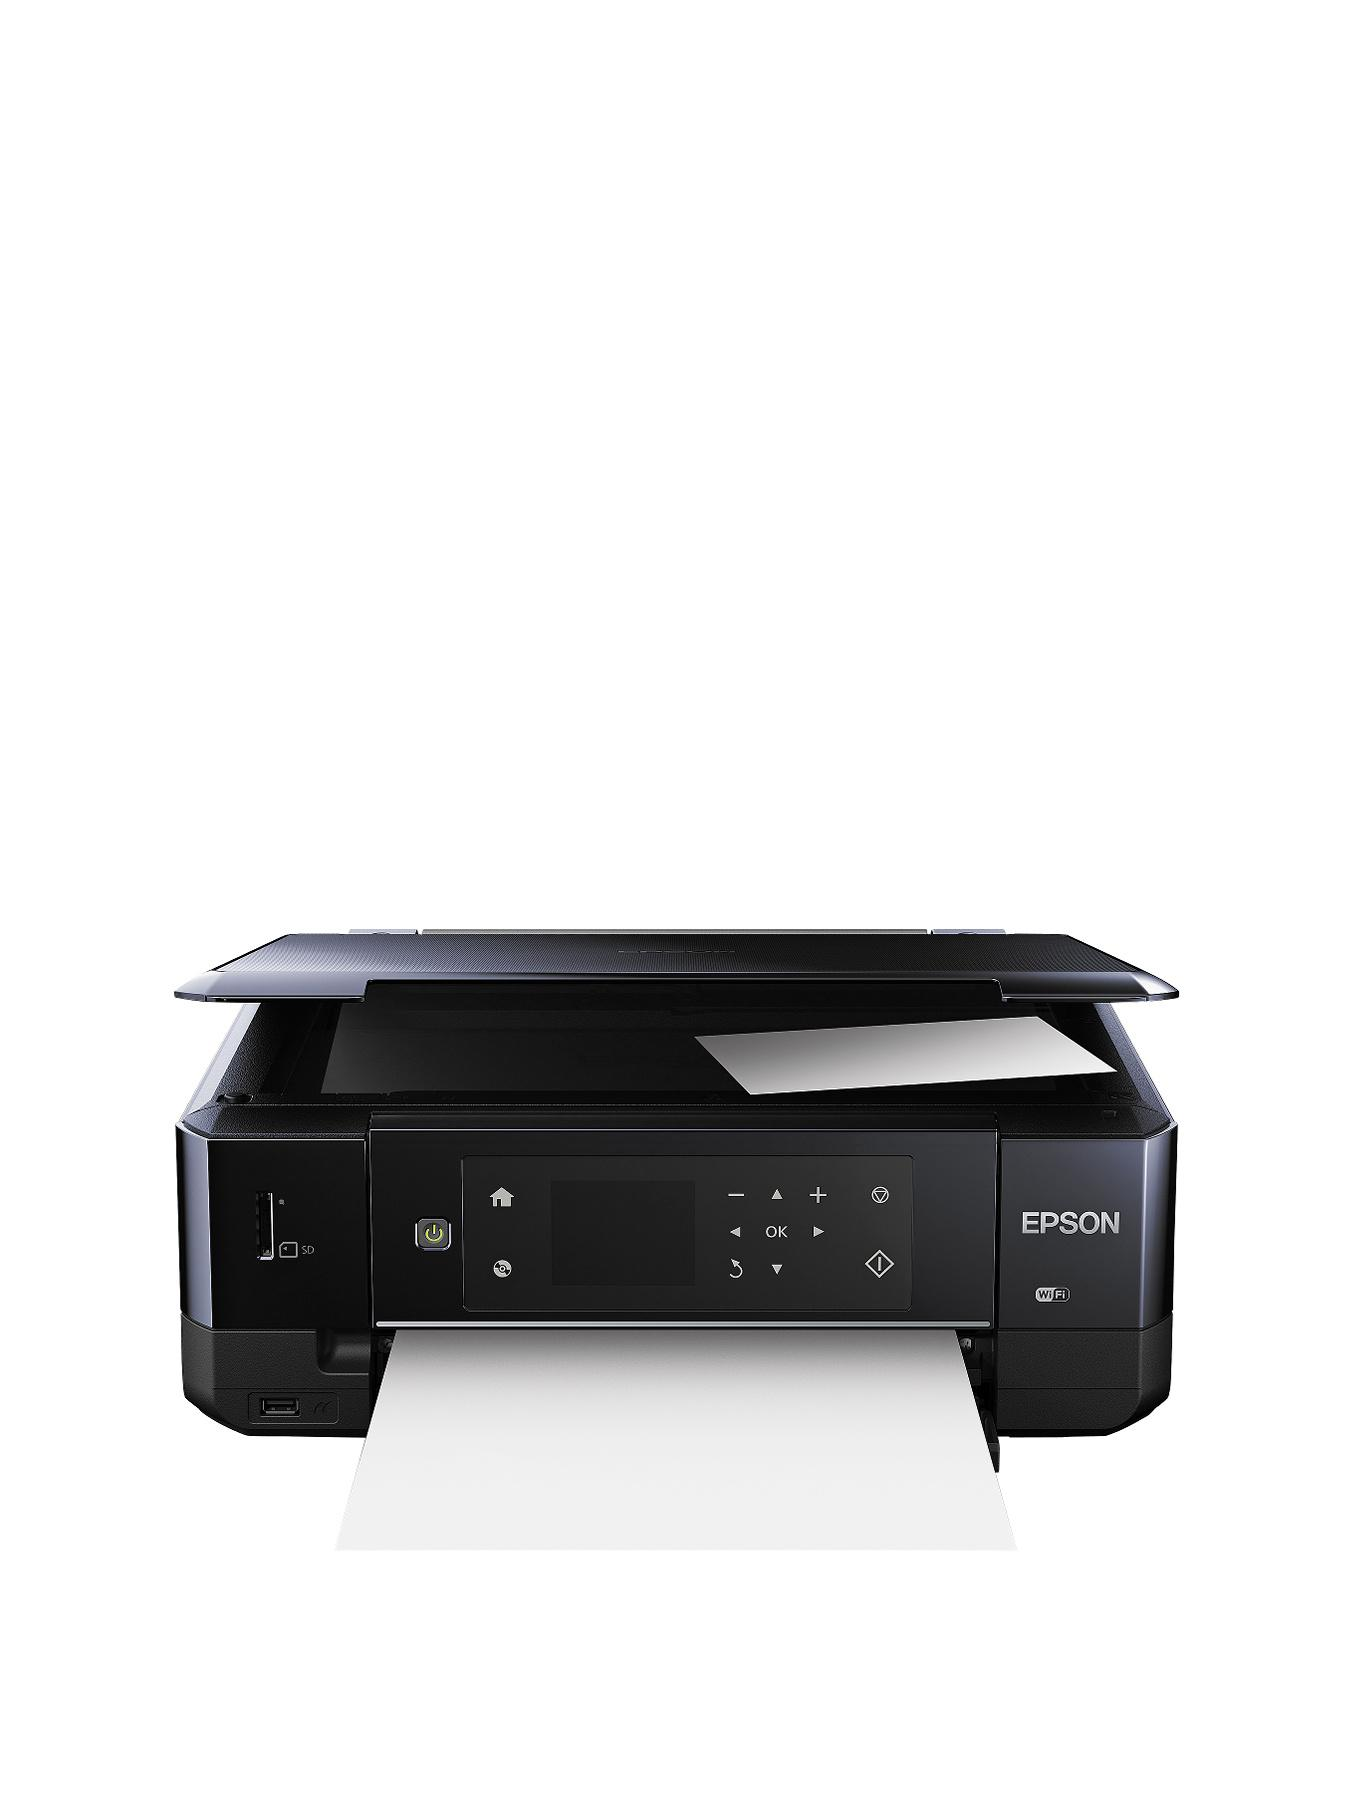 Epson Expression Home XP-620 Printer - Black, Black